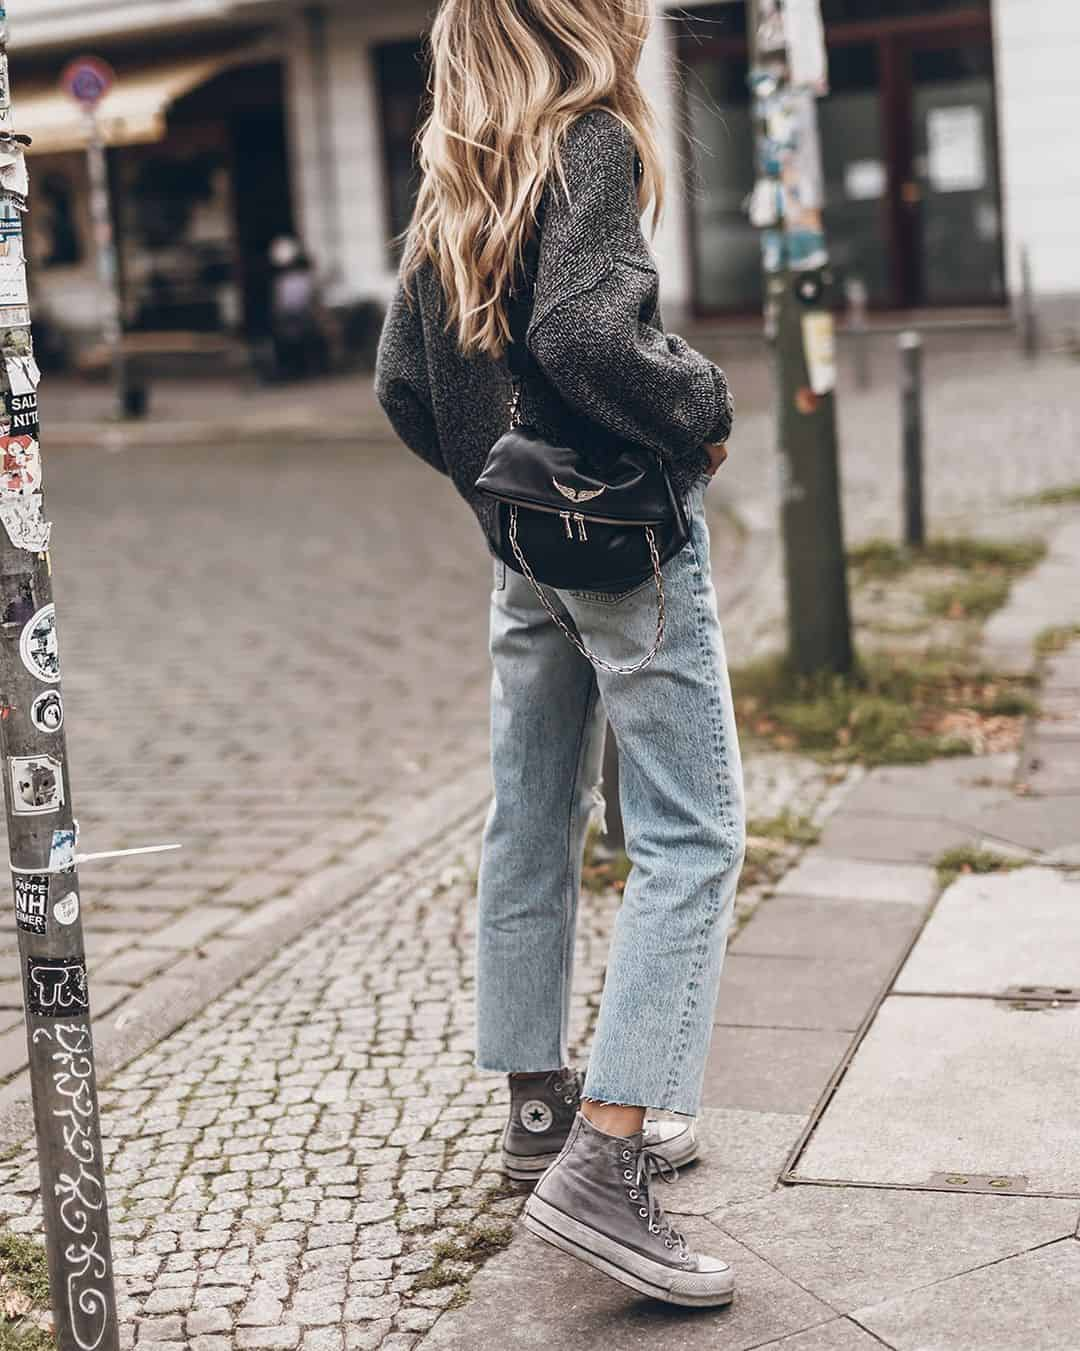 Cropped jeans and chucks outfit